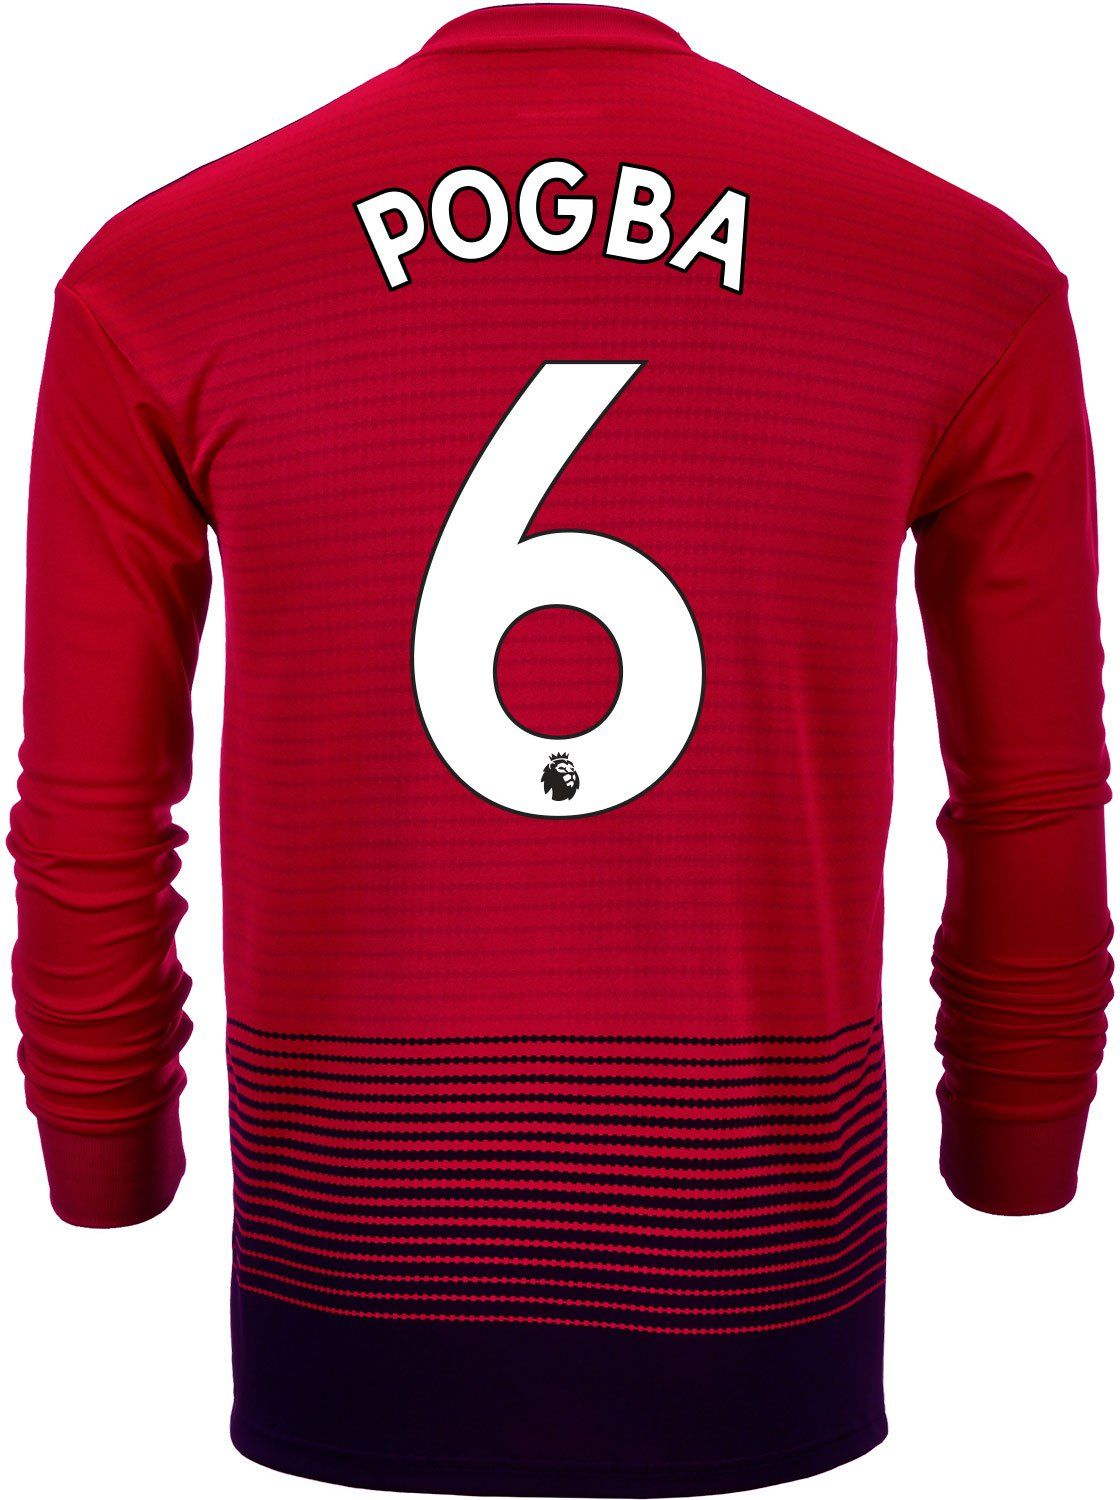 watch fb916 63360 2018/19 adidas Paul Pogba Manchester United L/S Home Jersey ...